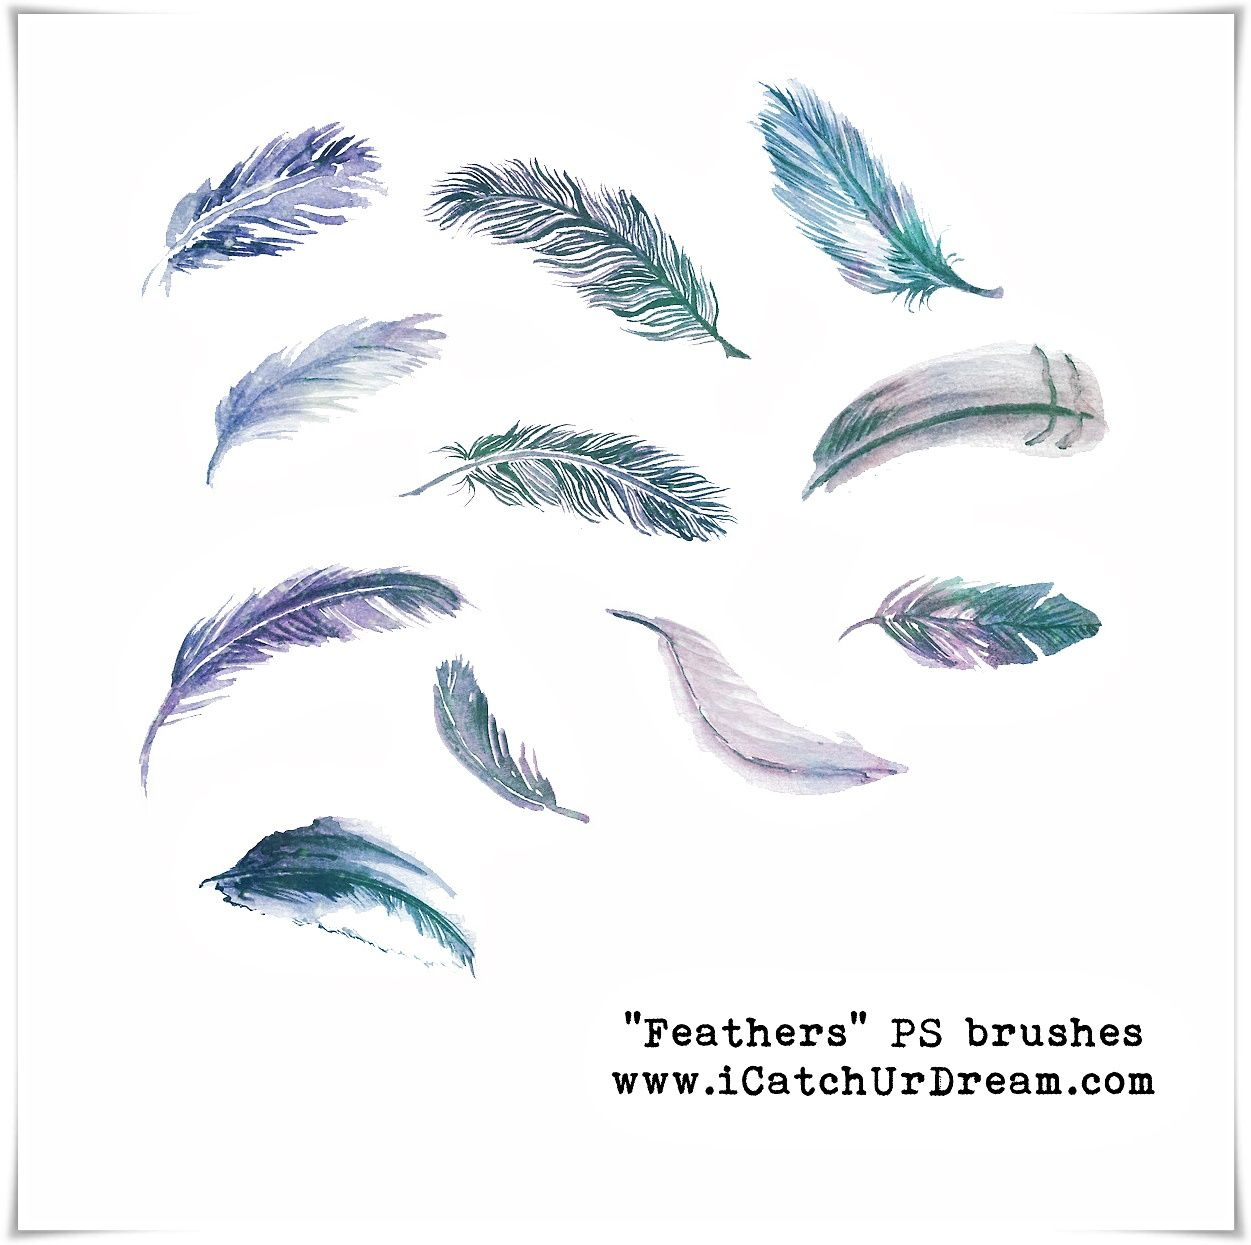 Feathers Ps Brushes By Icatchurdream Deviantart Com On Deviantart